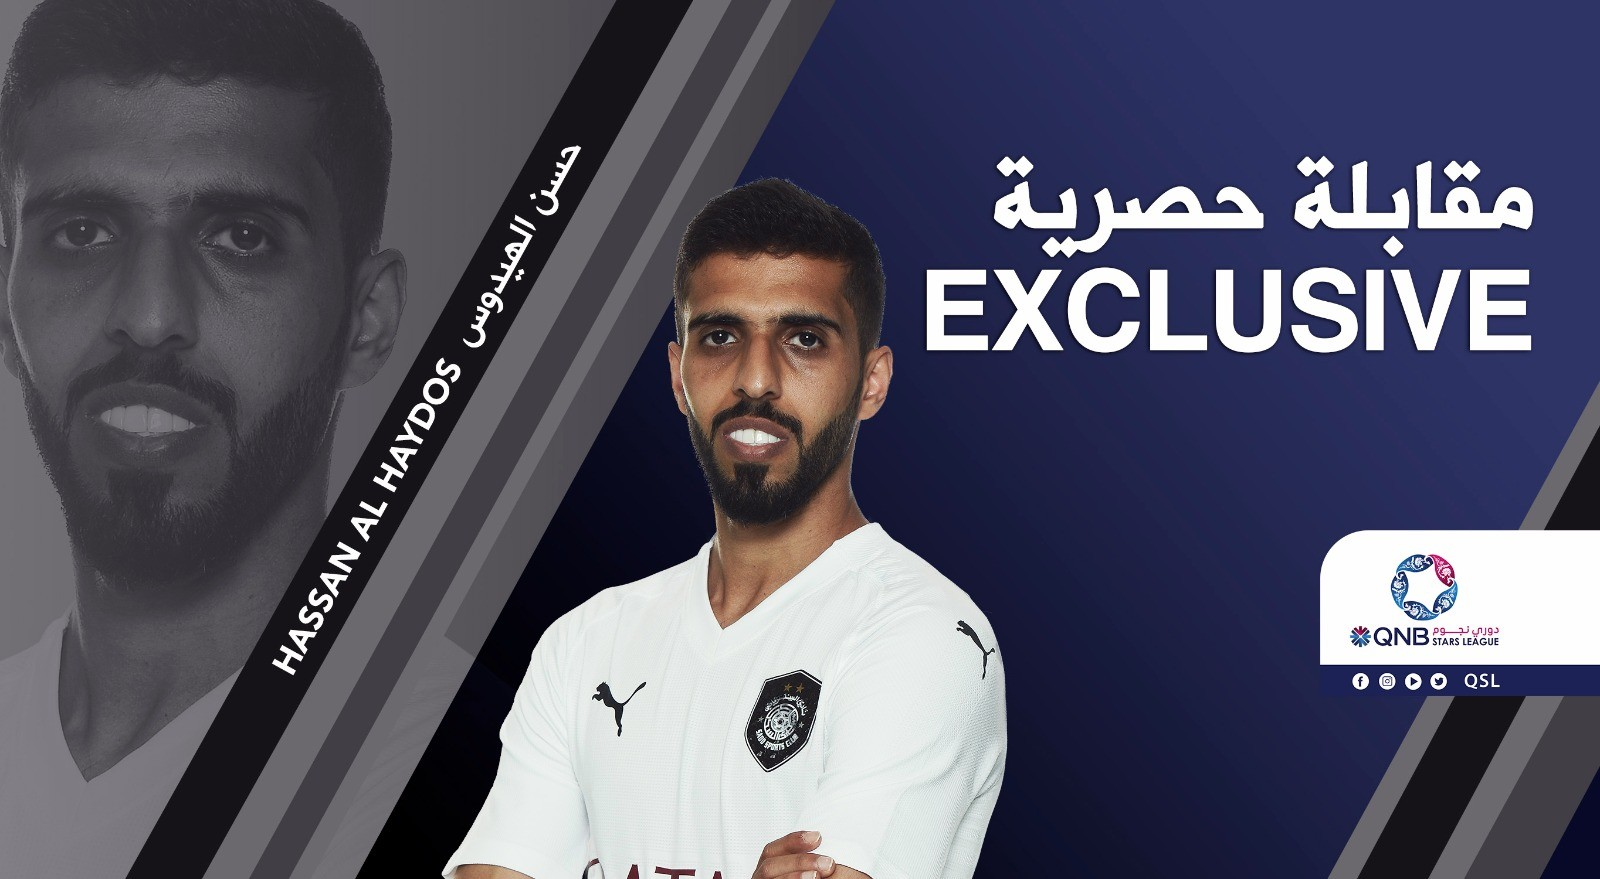 Al Sadd striker and Qatar national team captain Hassan Al Haydous in an Exclusive Interview with QSL Online ahead of the Qatar Clasico against Al Rayyan